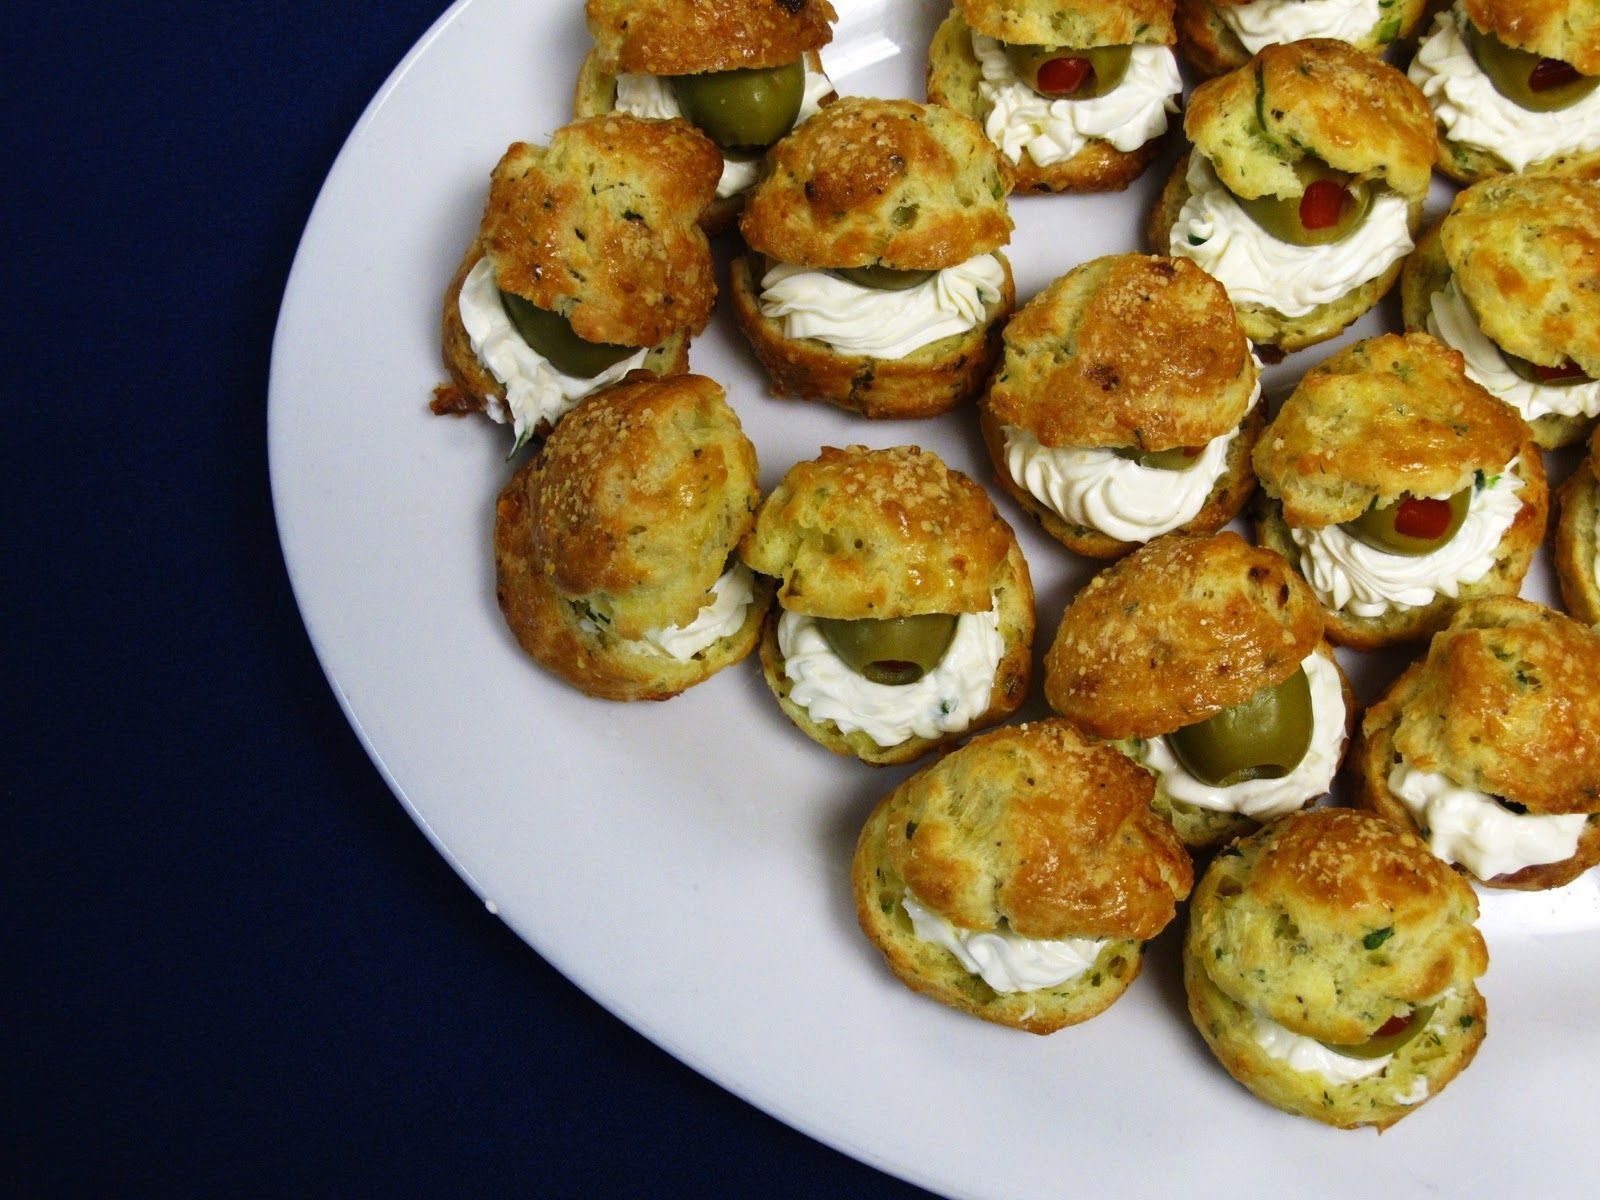 Pictures of French Food Snack Ideas